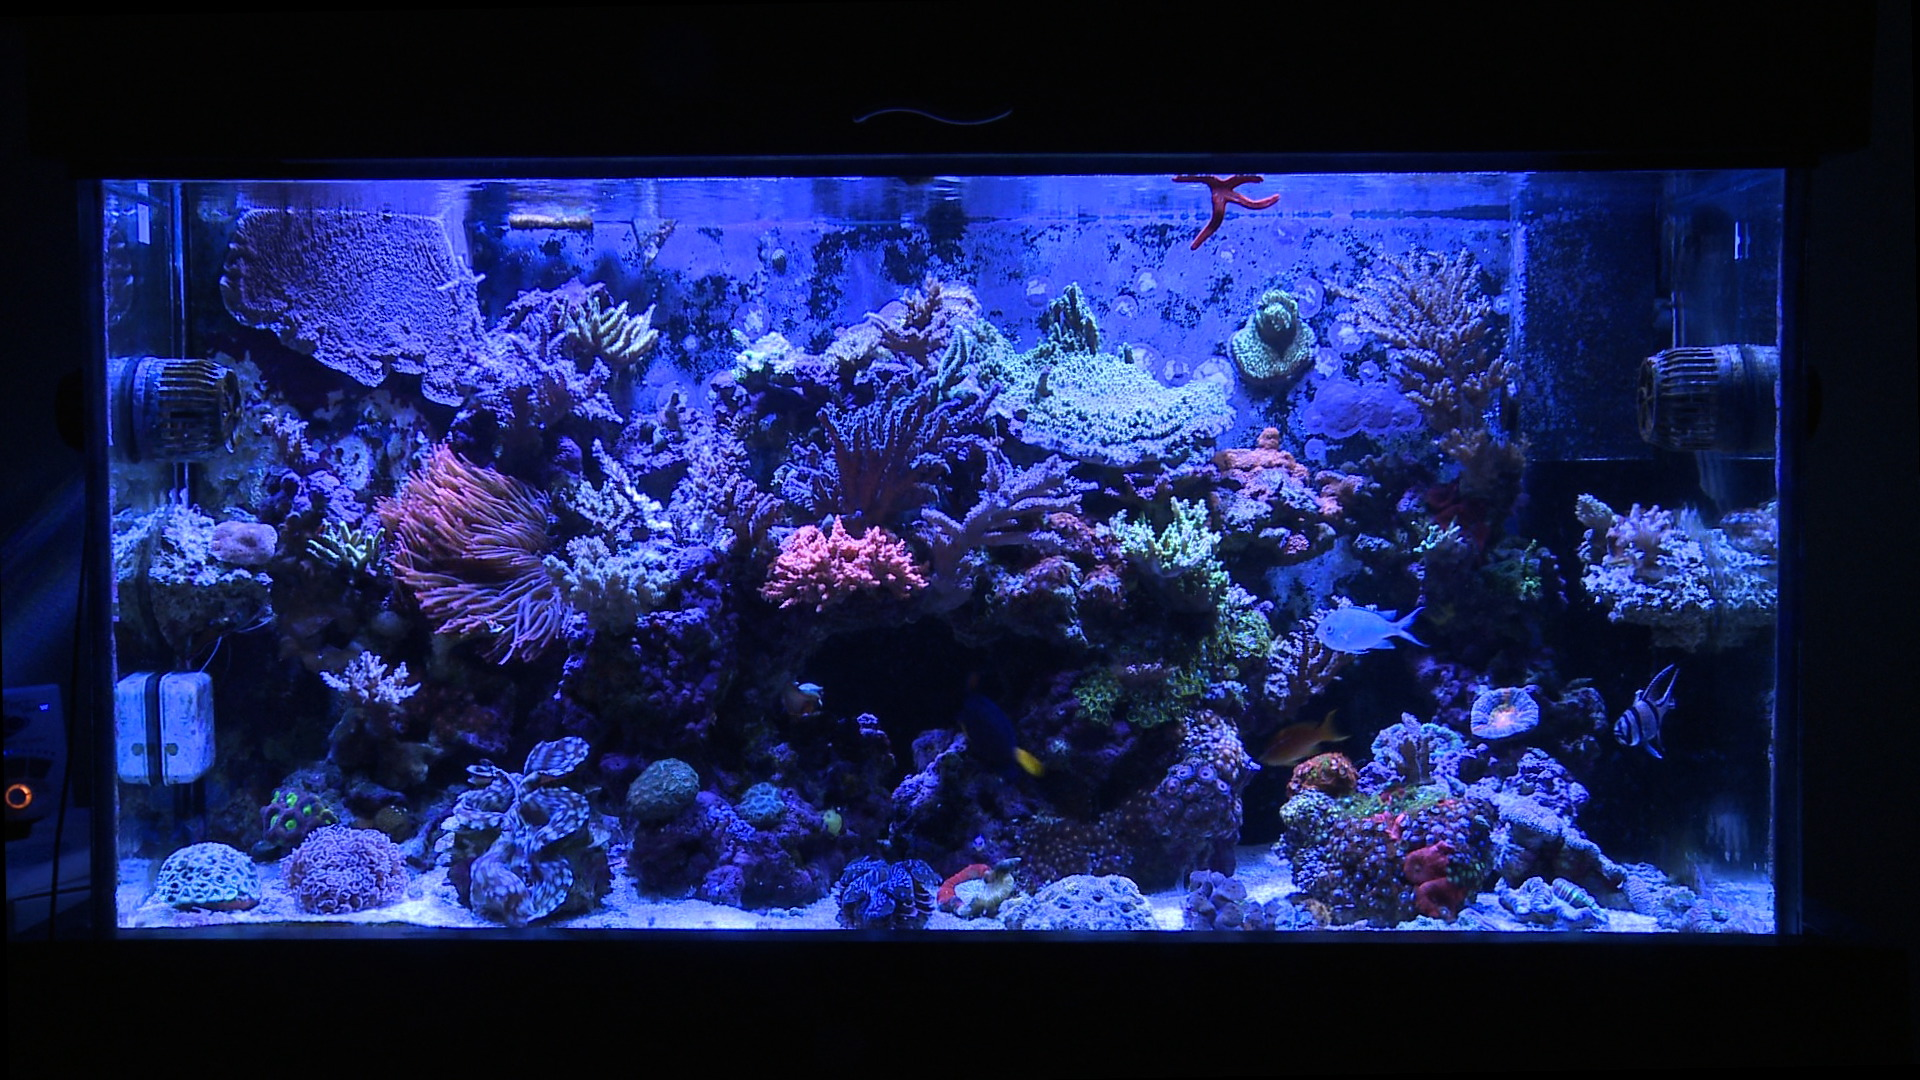 Saltwater aquarium - Full Tank Shot